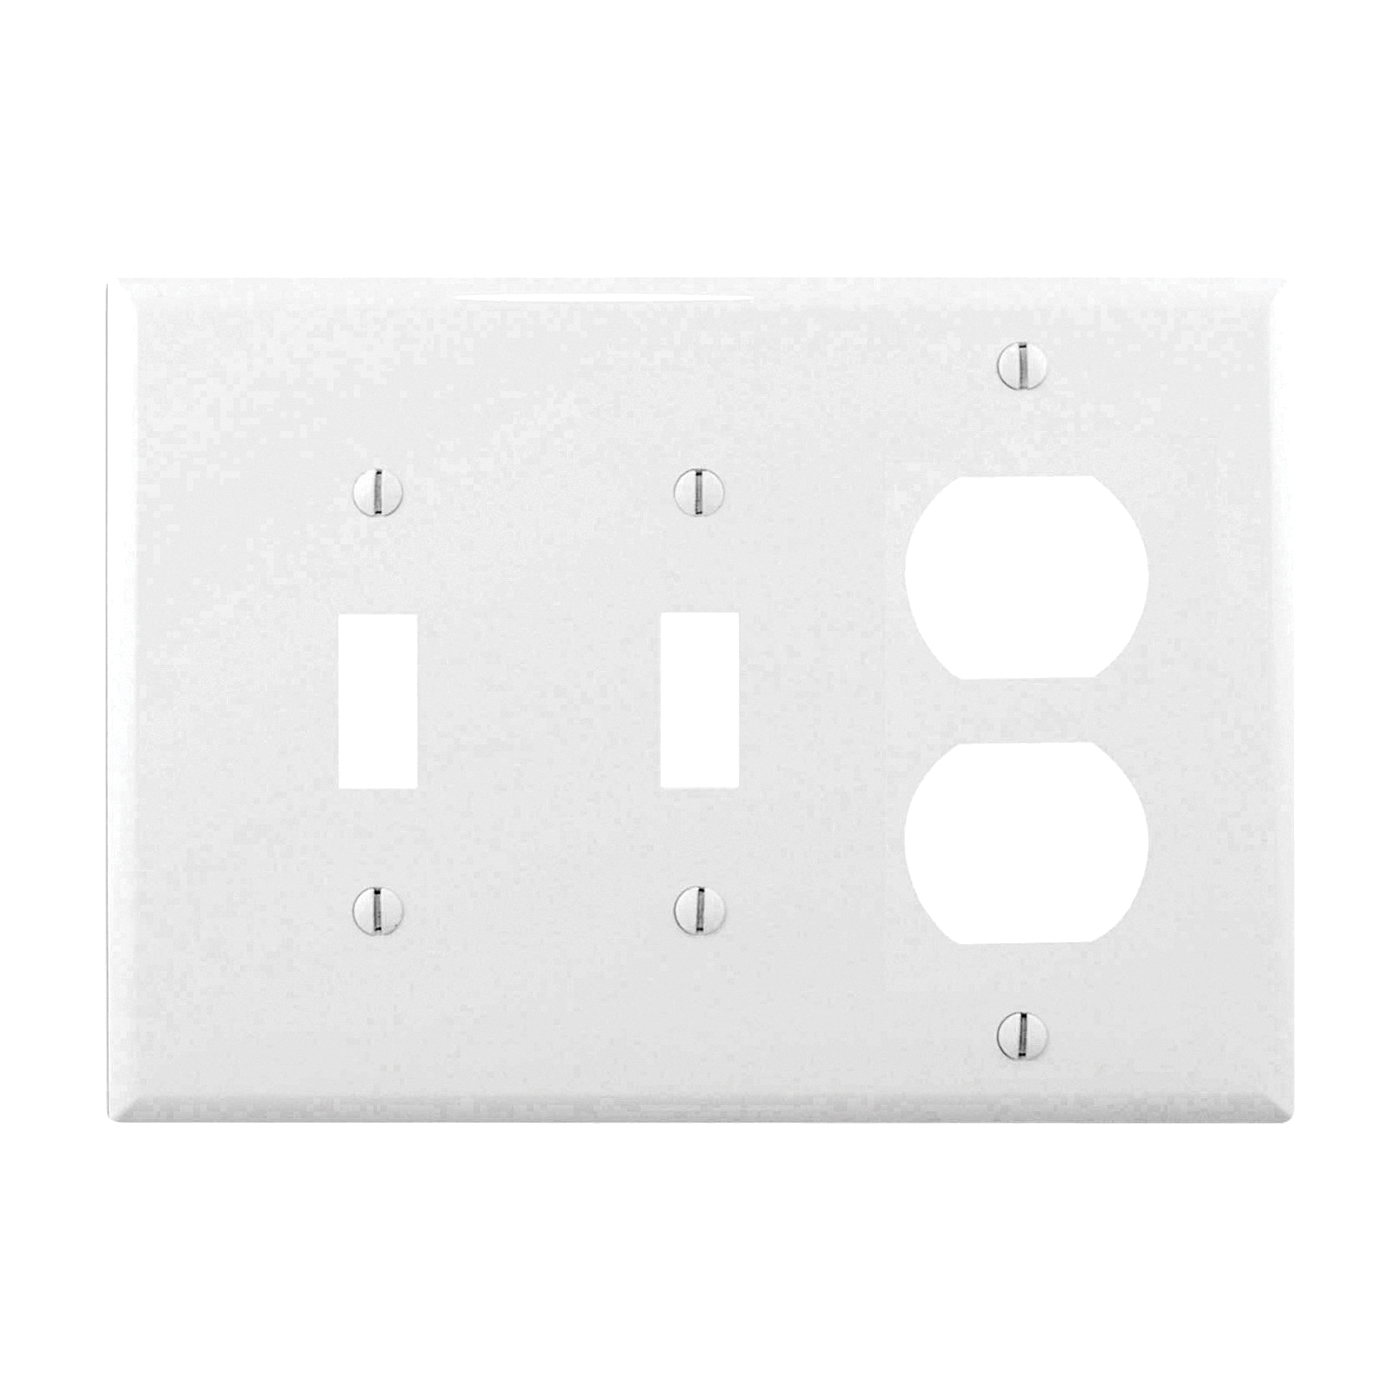 Picture of Eaton Wiring Devices PJ28W Wallplate, 4-7/8 in L, 6-3/4 in W, 3-Gang, Polycarbonate, White, High-Gloss